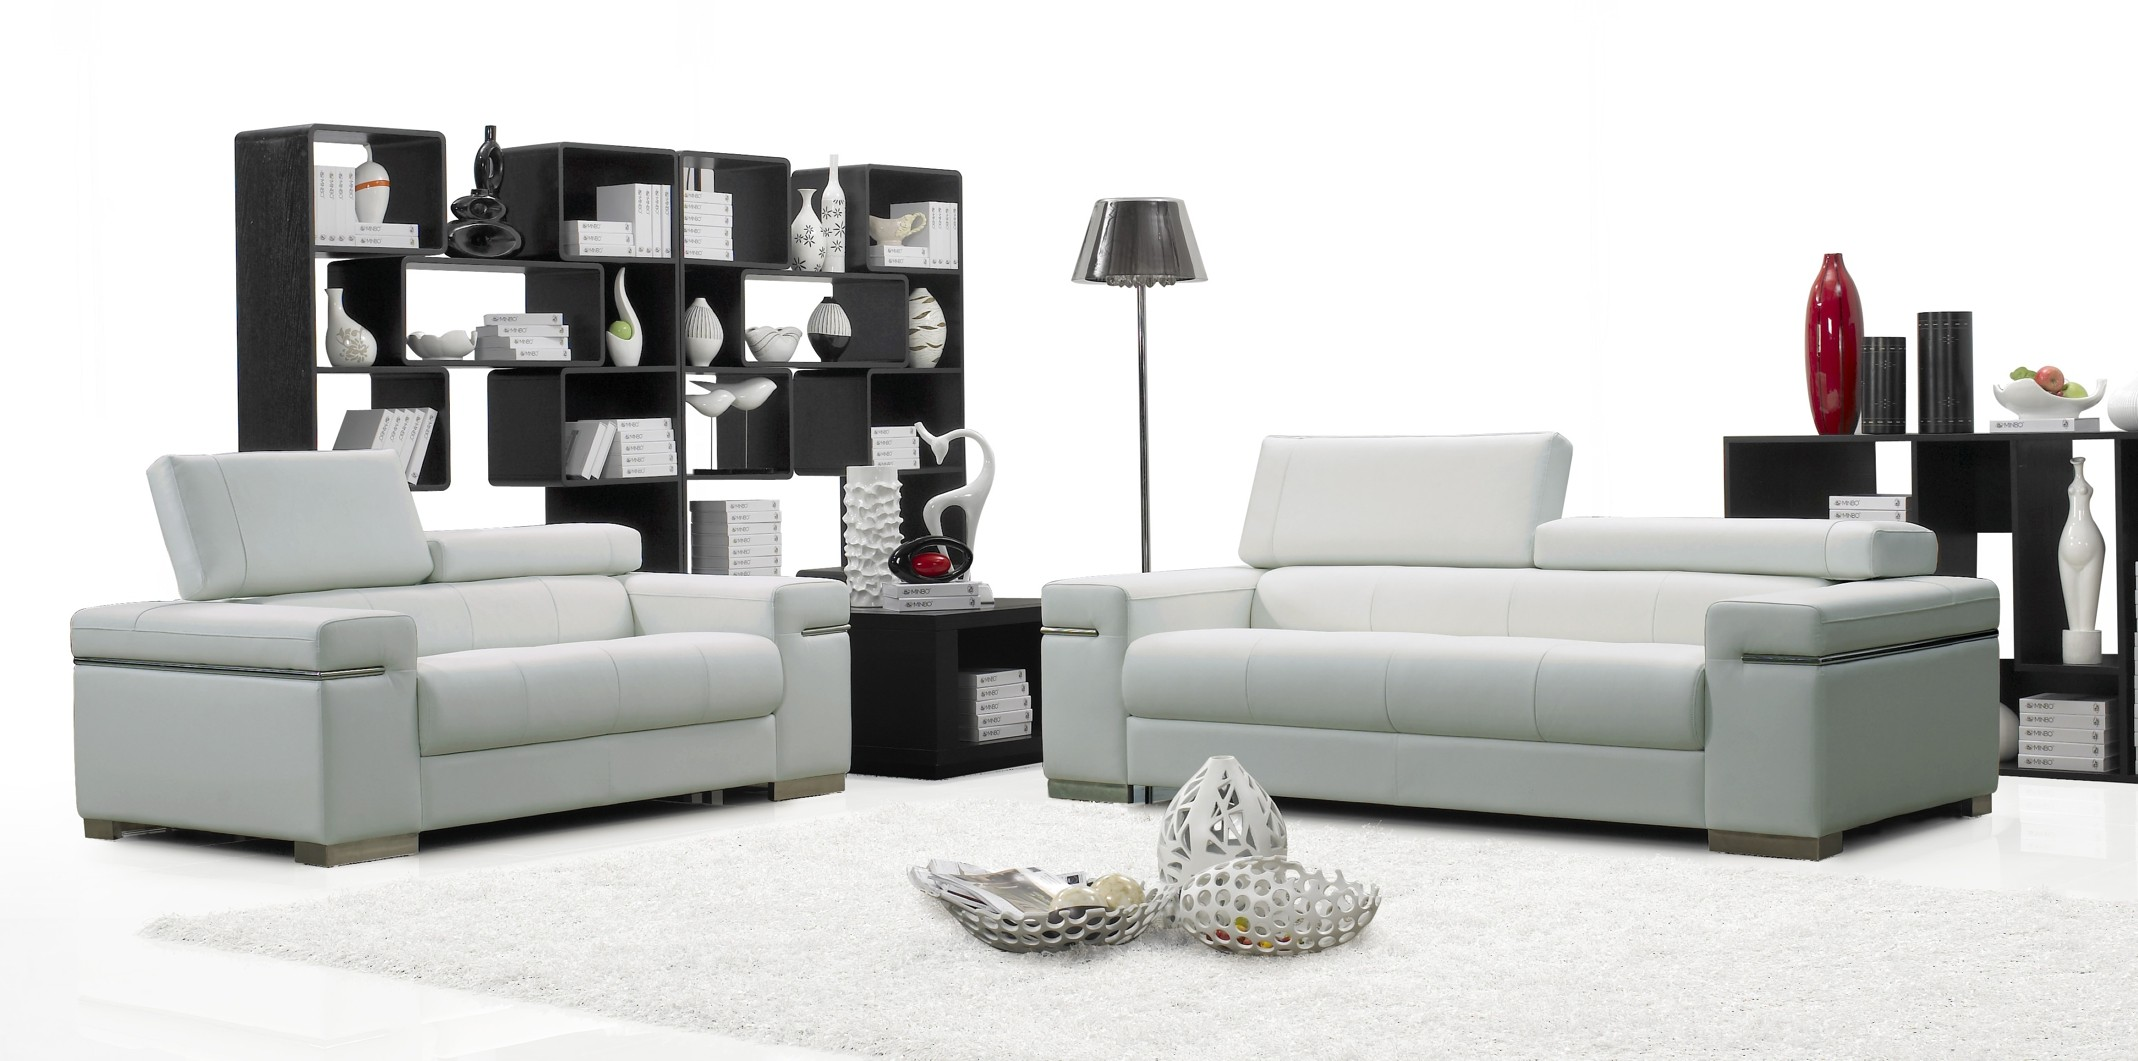 Modern sofa sets white modern sofa set vg 74 leather sofas for Modern living room furniture sets